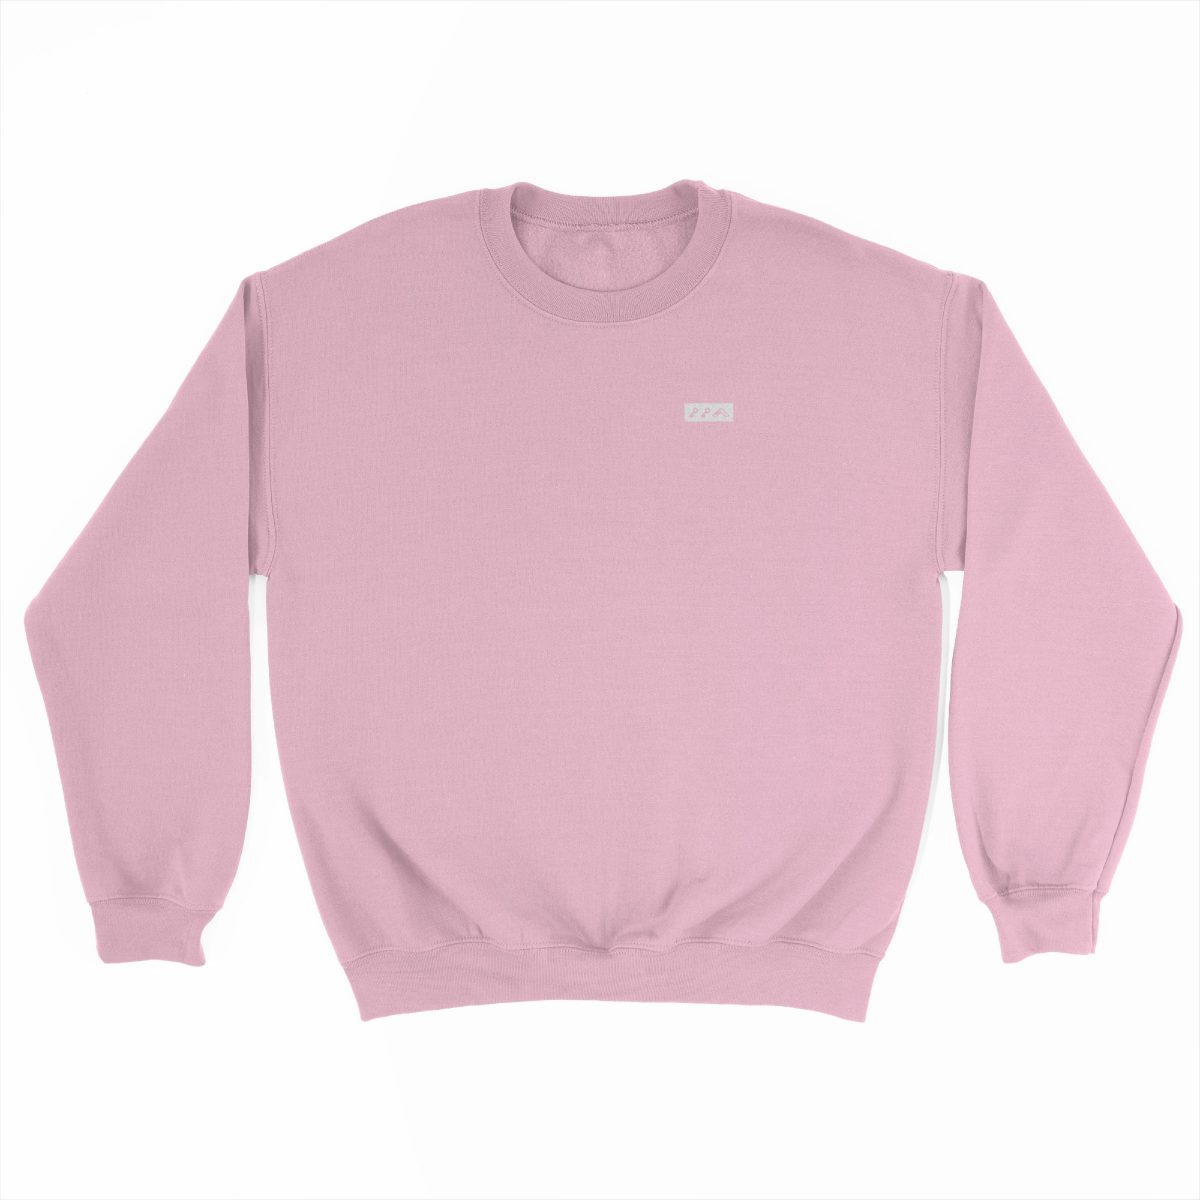 KIKICUTT white icon on a light pink comfy sweatshirt at kikicutt.com